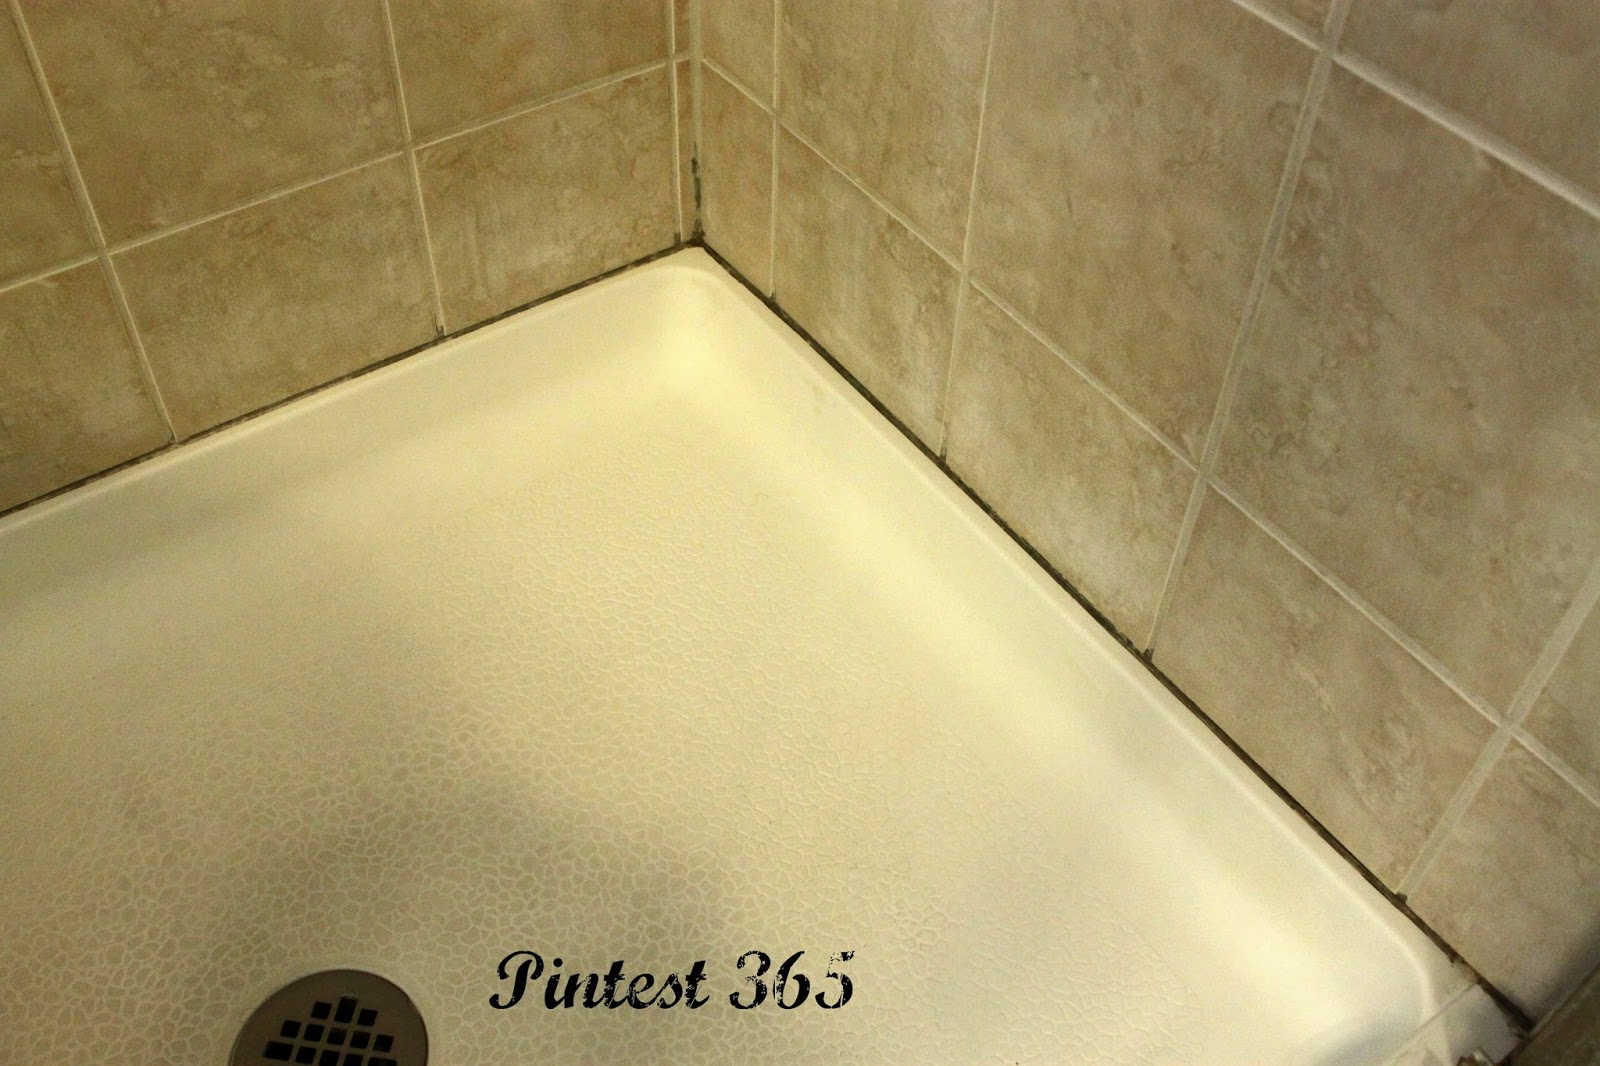 Pintest 365.: Day 82: OxiClean Mixture to Clean Grout (fail).